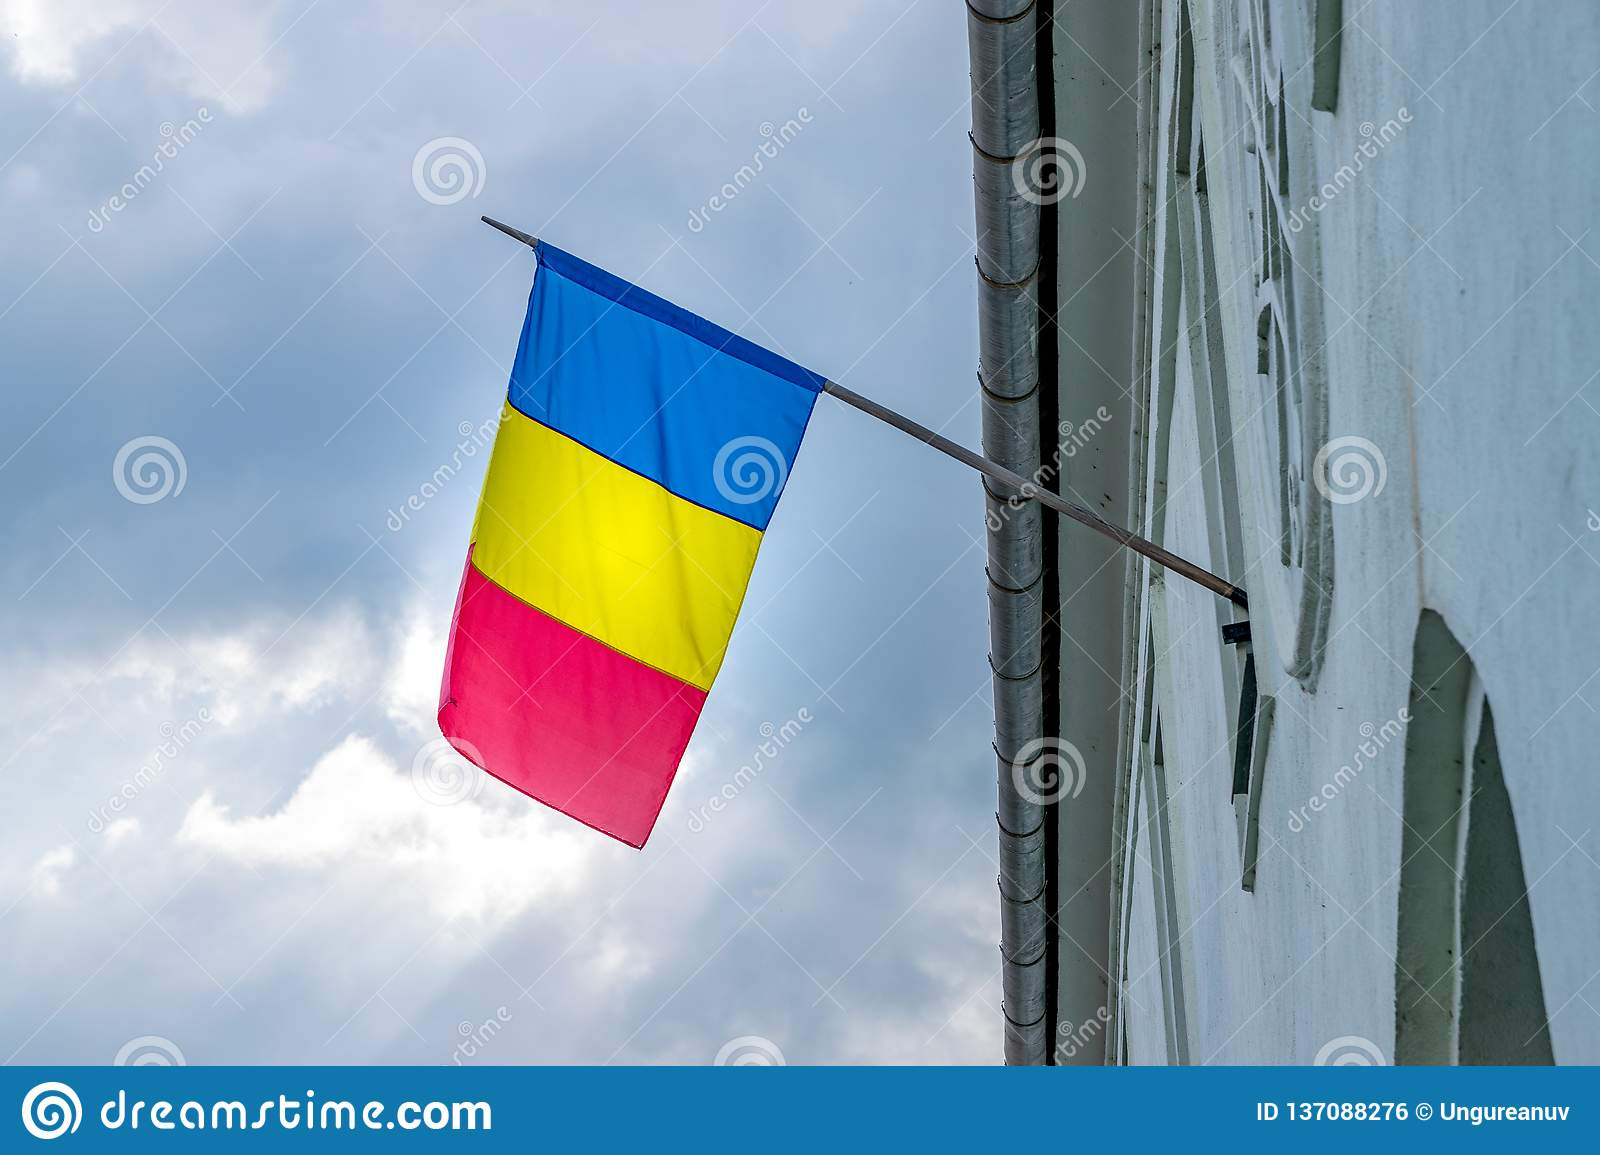 Romanian Flag On A House In Sibiu Romania Stock Photo Image Of Romanian Environment 137088276